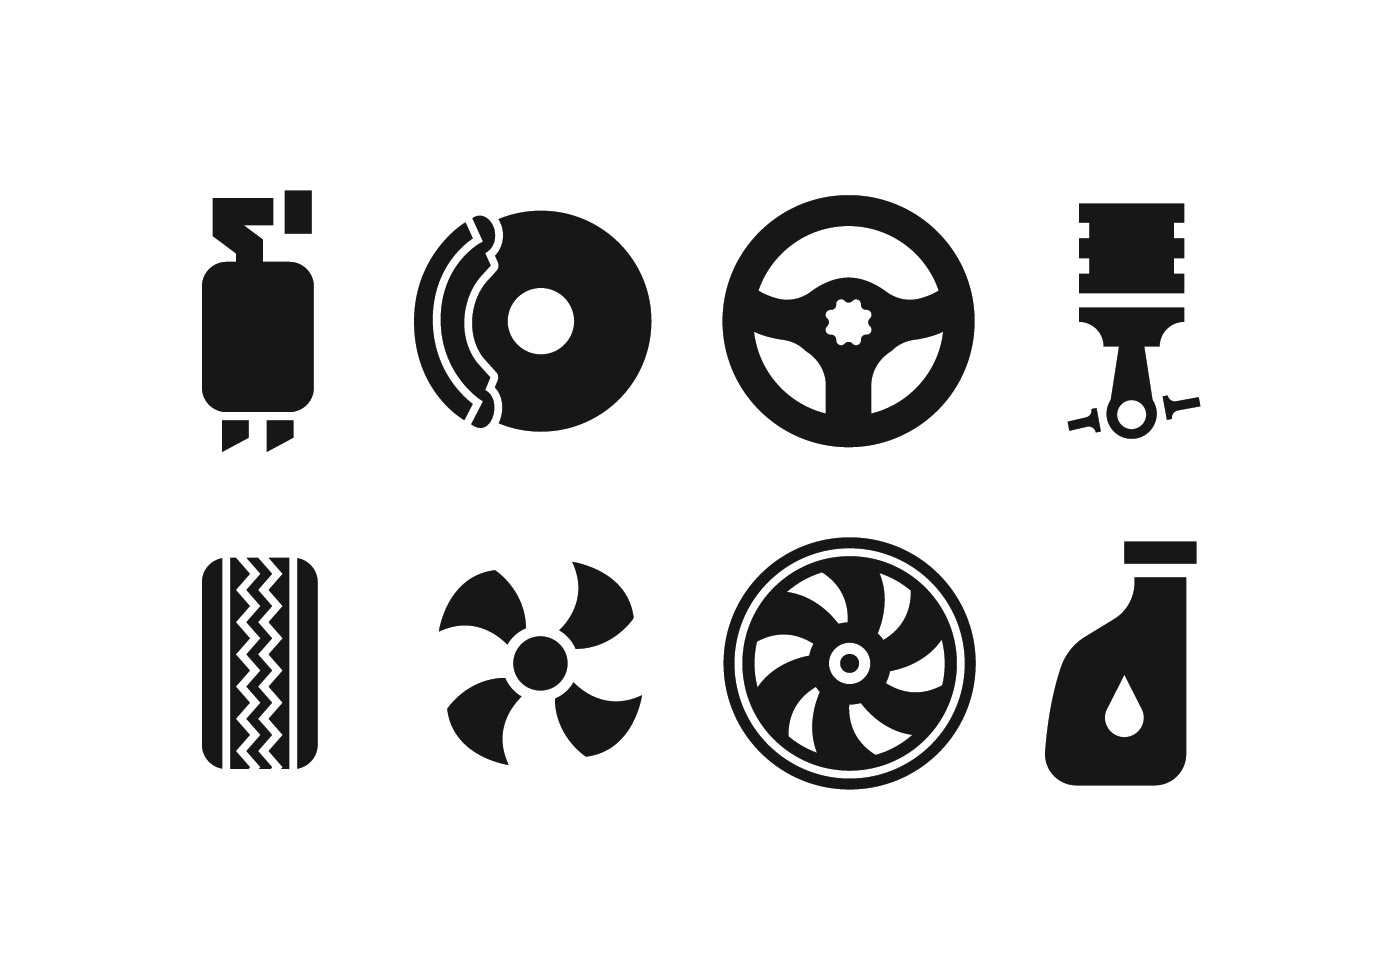 Tractor Parts Icon : Car spare part icons download free vector art stock